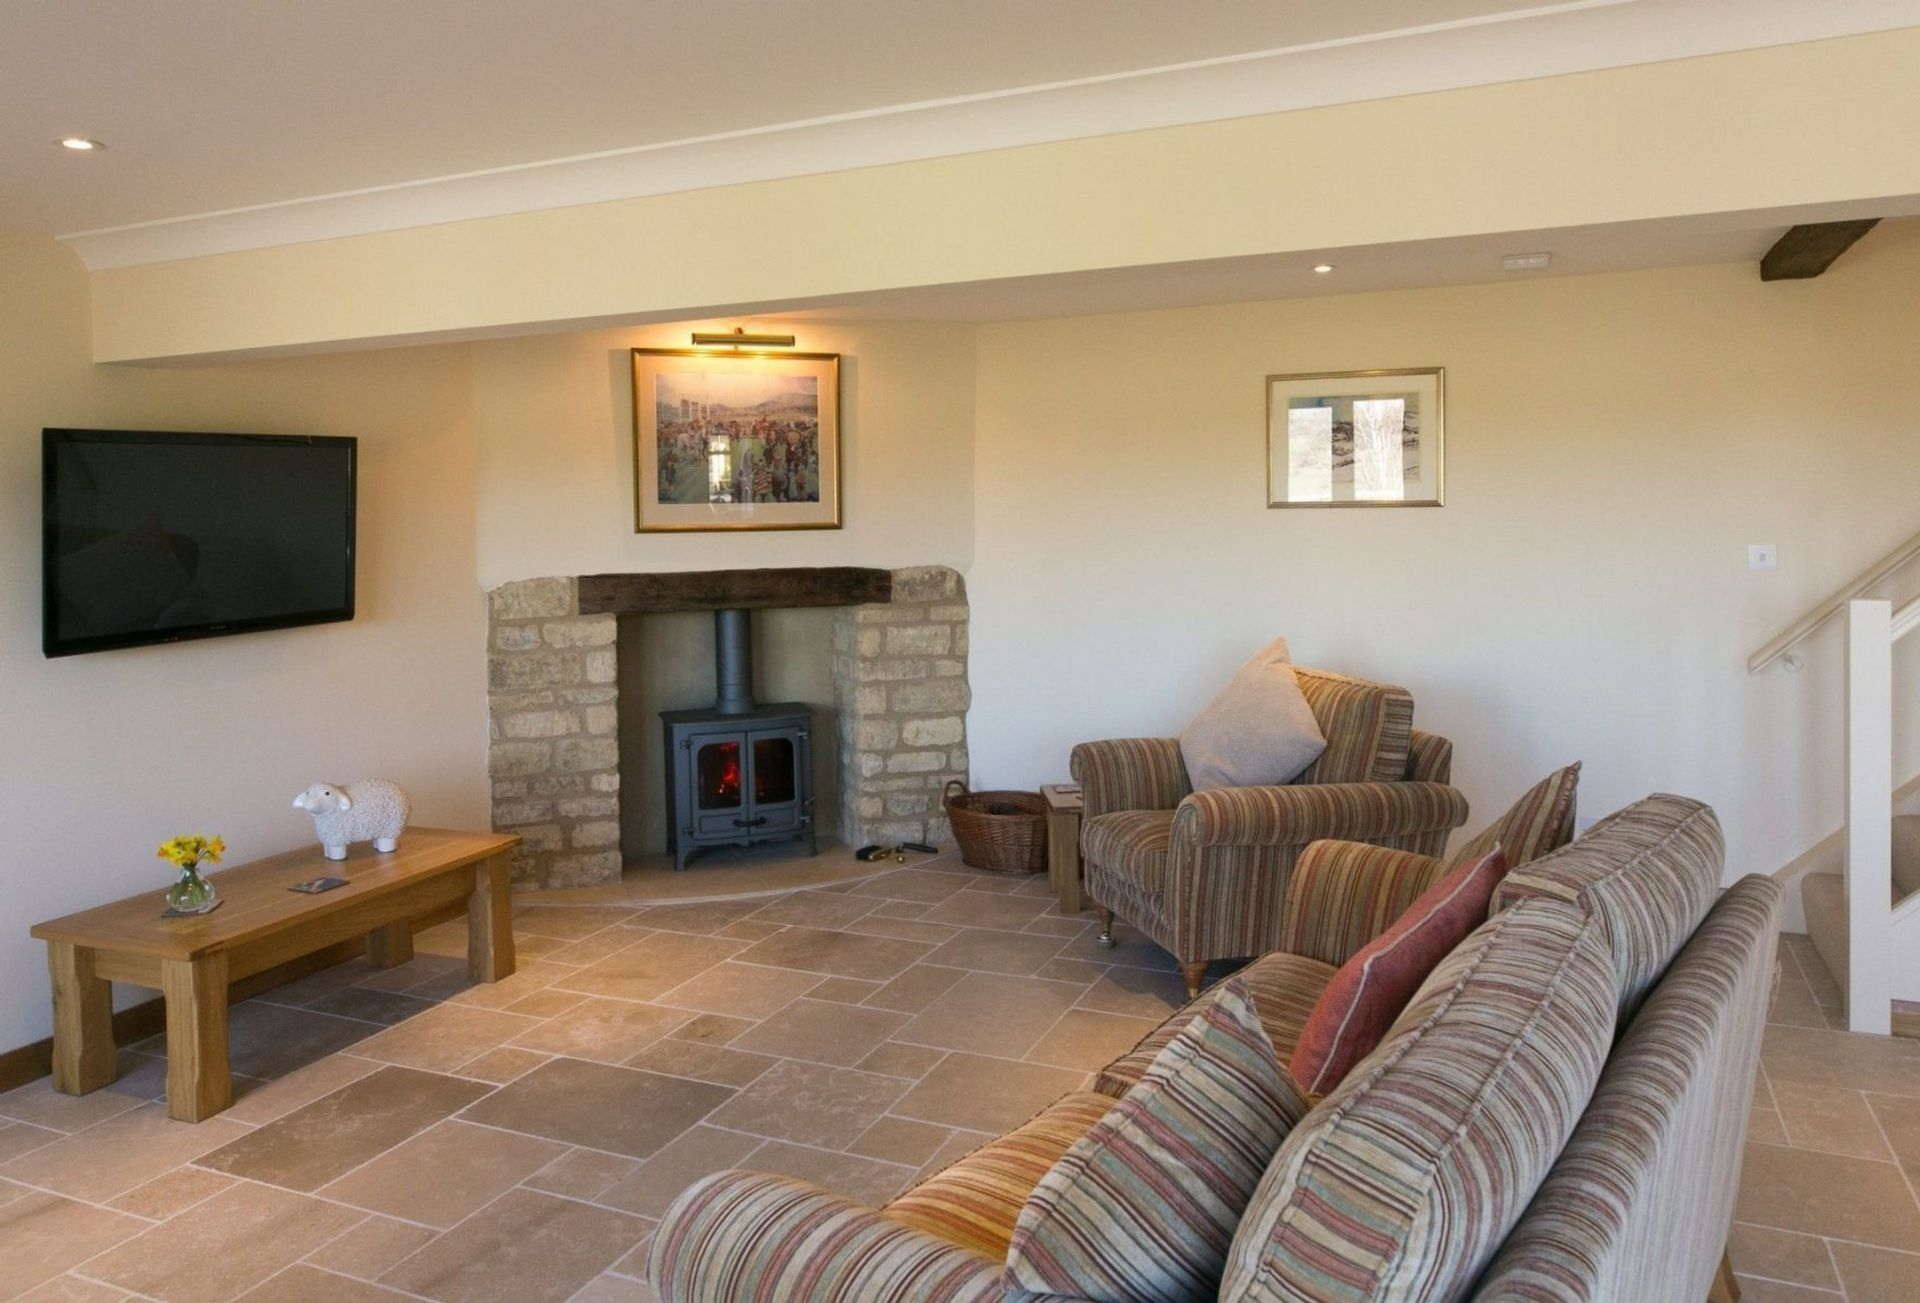 The Living area showing the fireplace